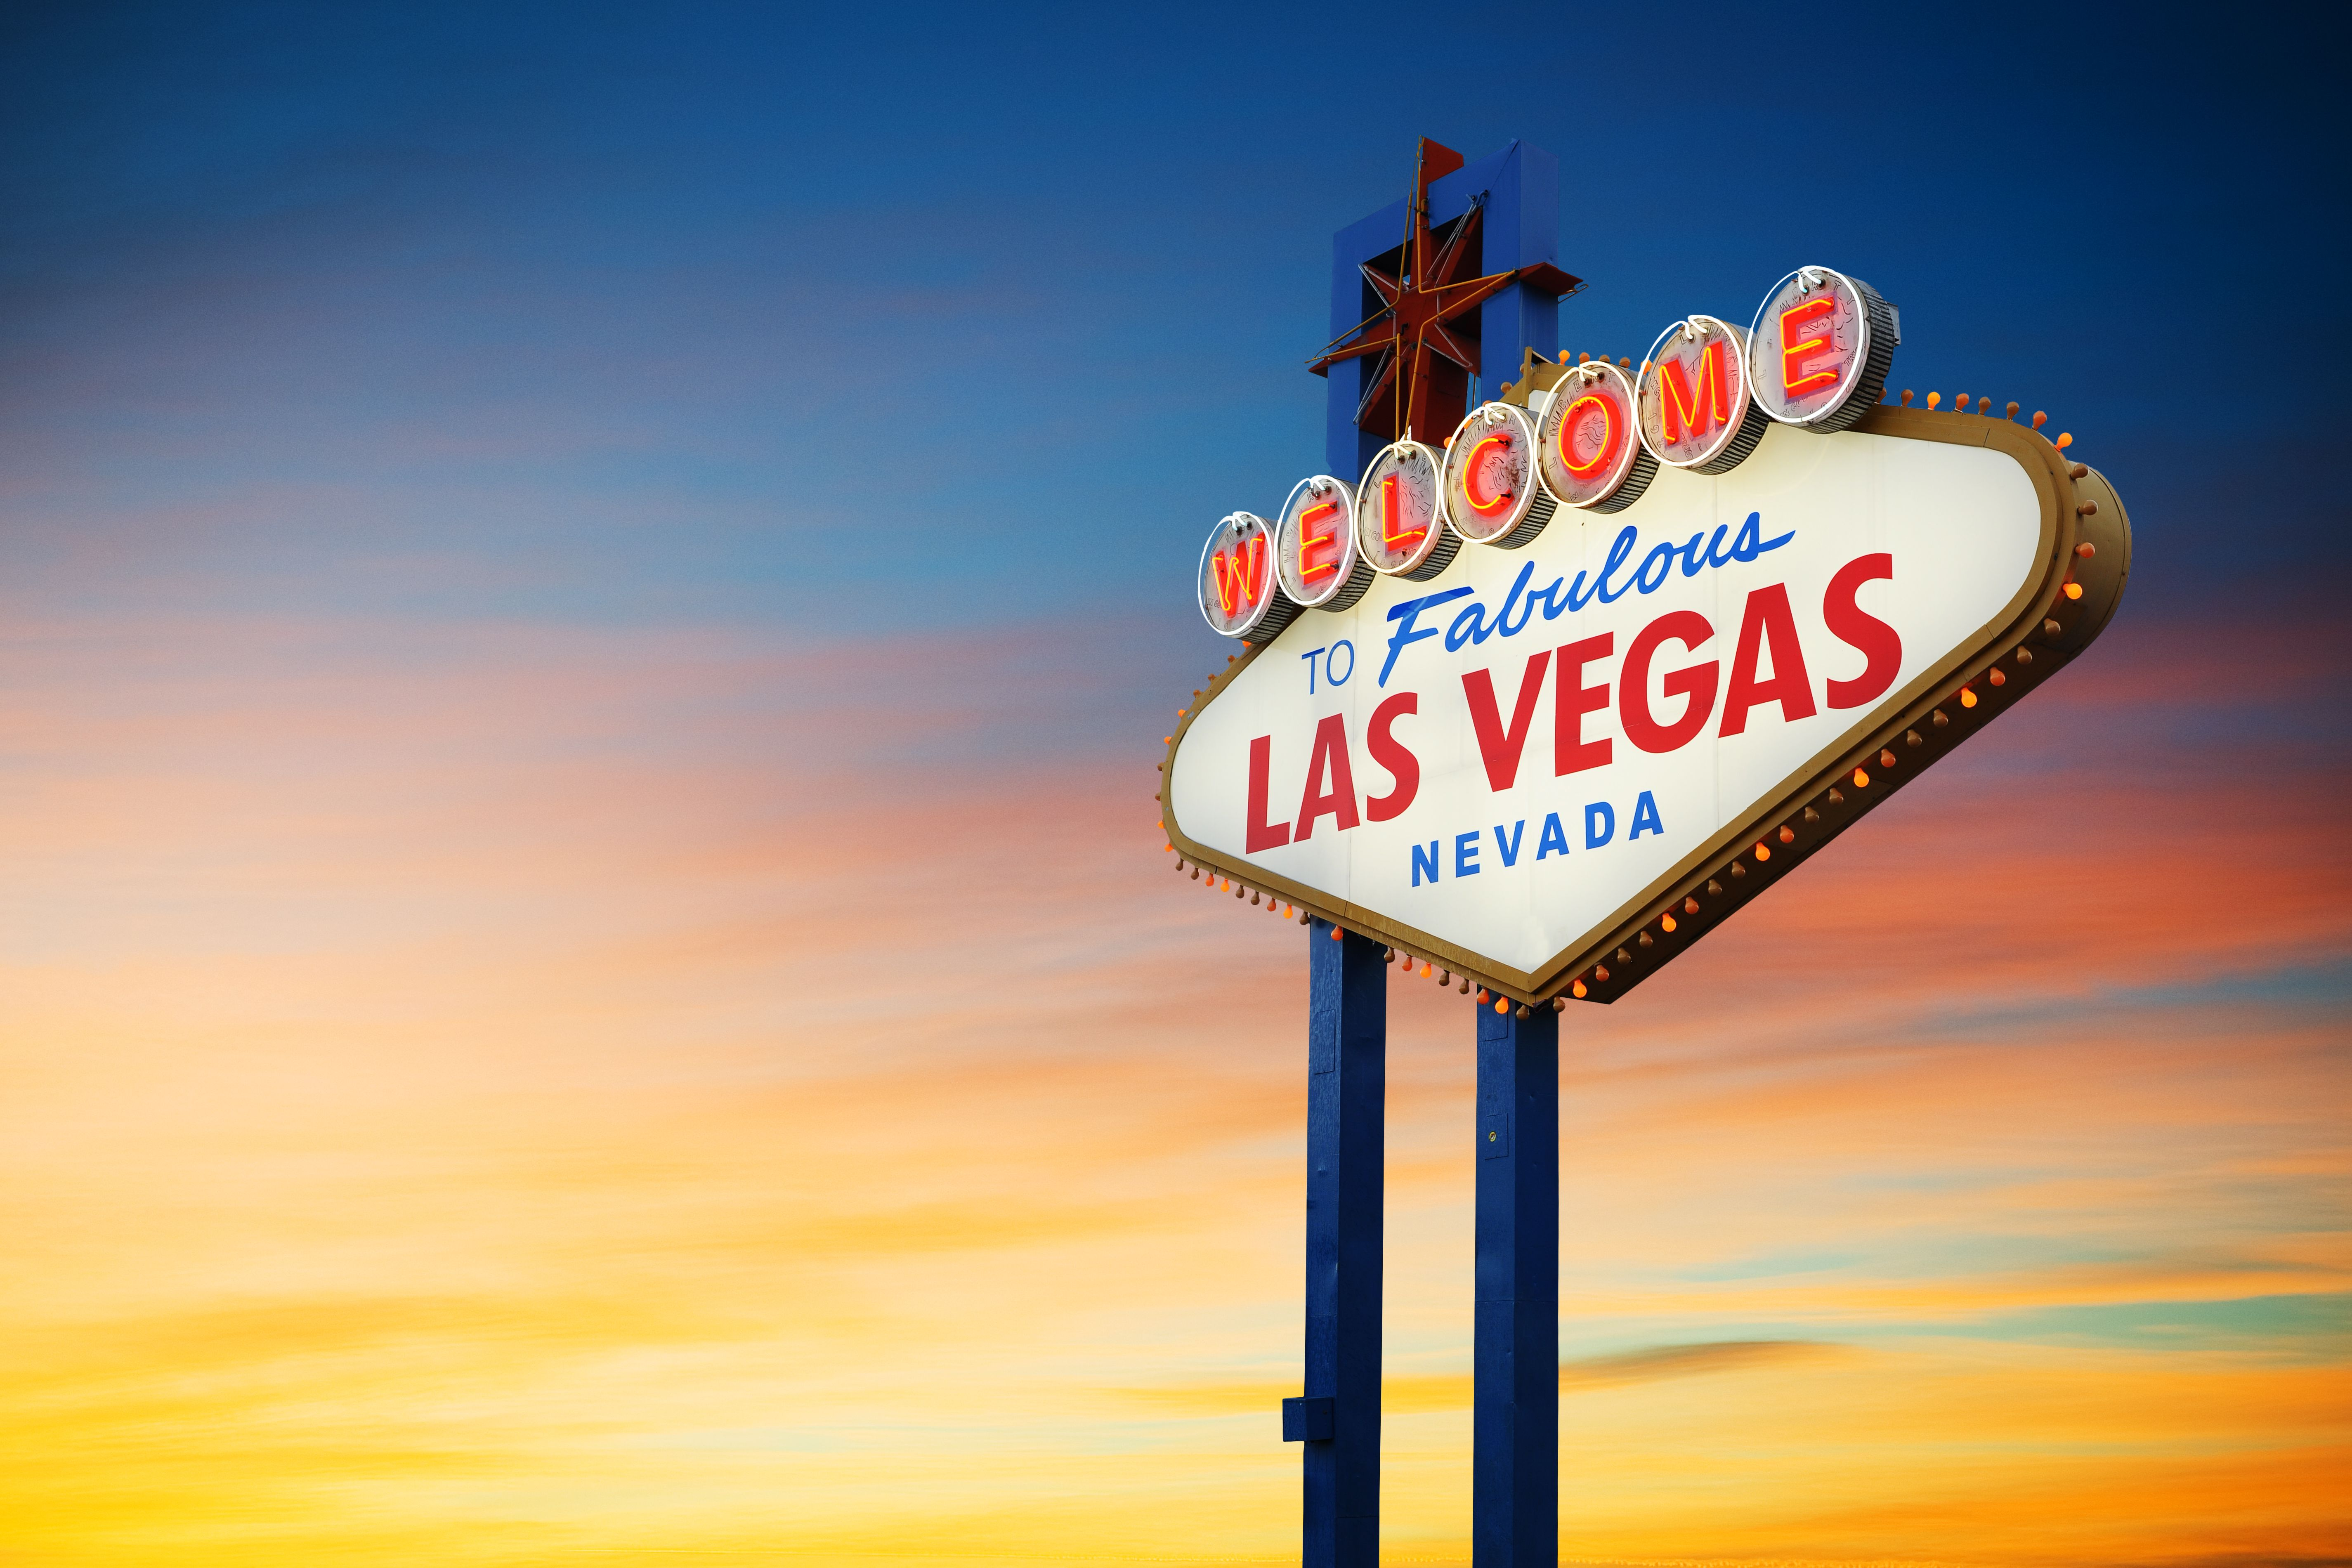 Welcome to Fabulous Las Vegas, Nevada Sign with sunset background